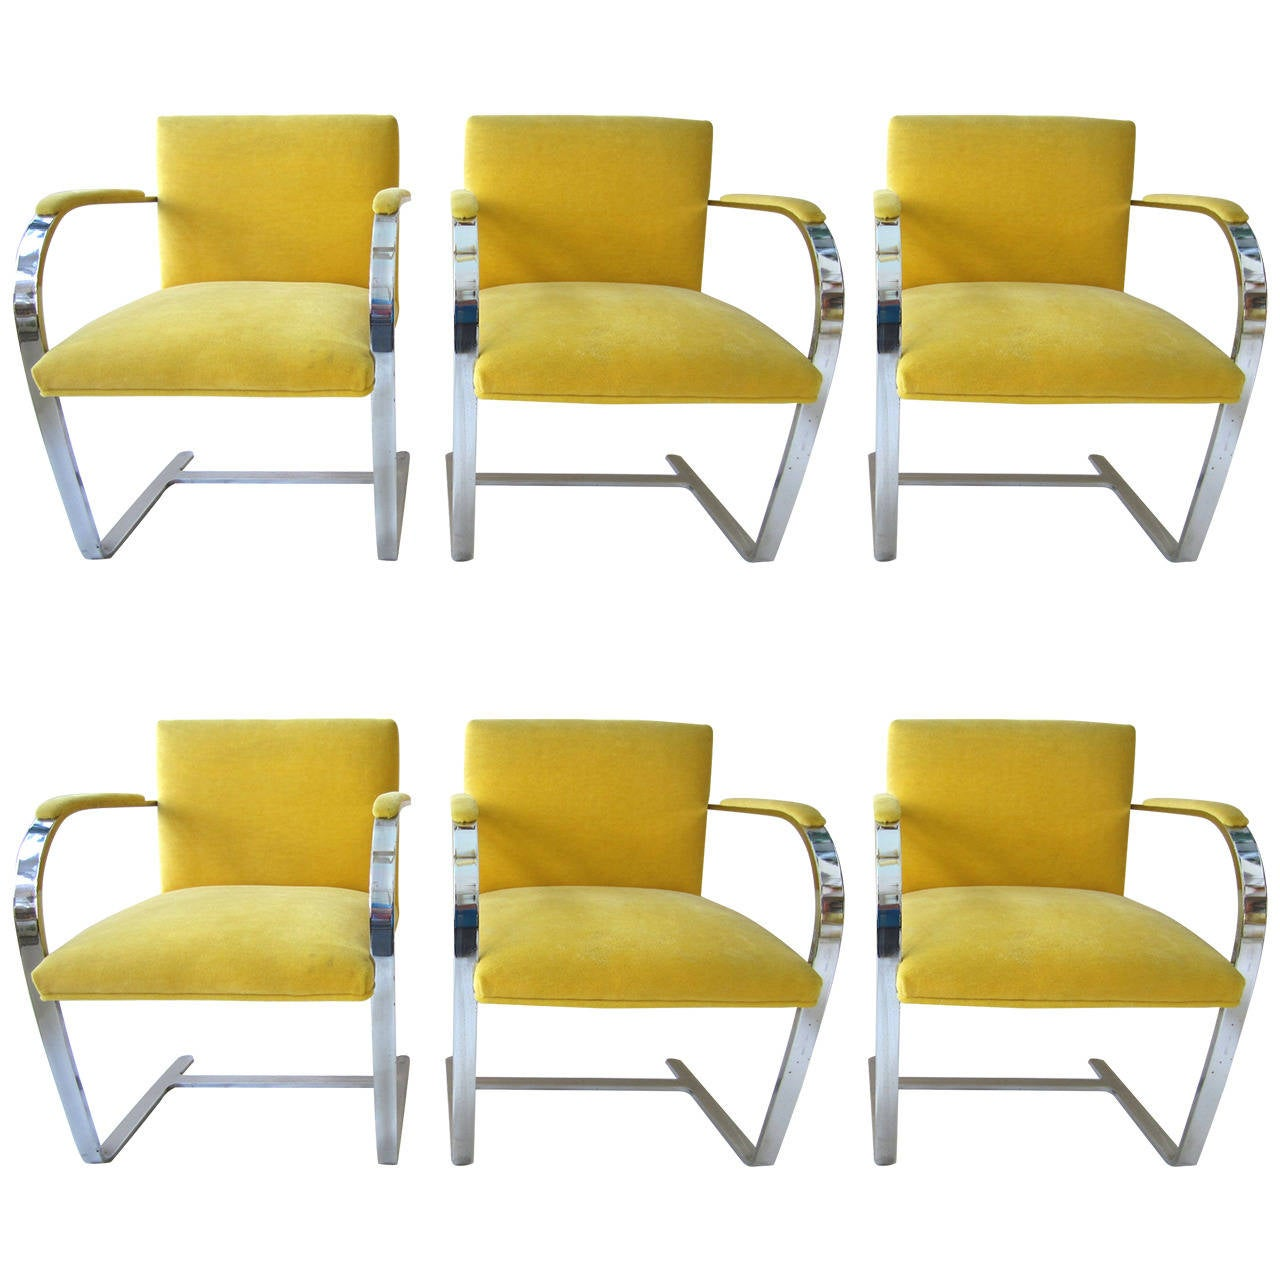 yellow upholstered dining chairs tufted arm chair six 1960s mies van der rohe brno in